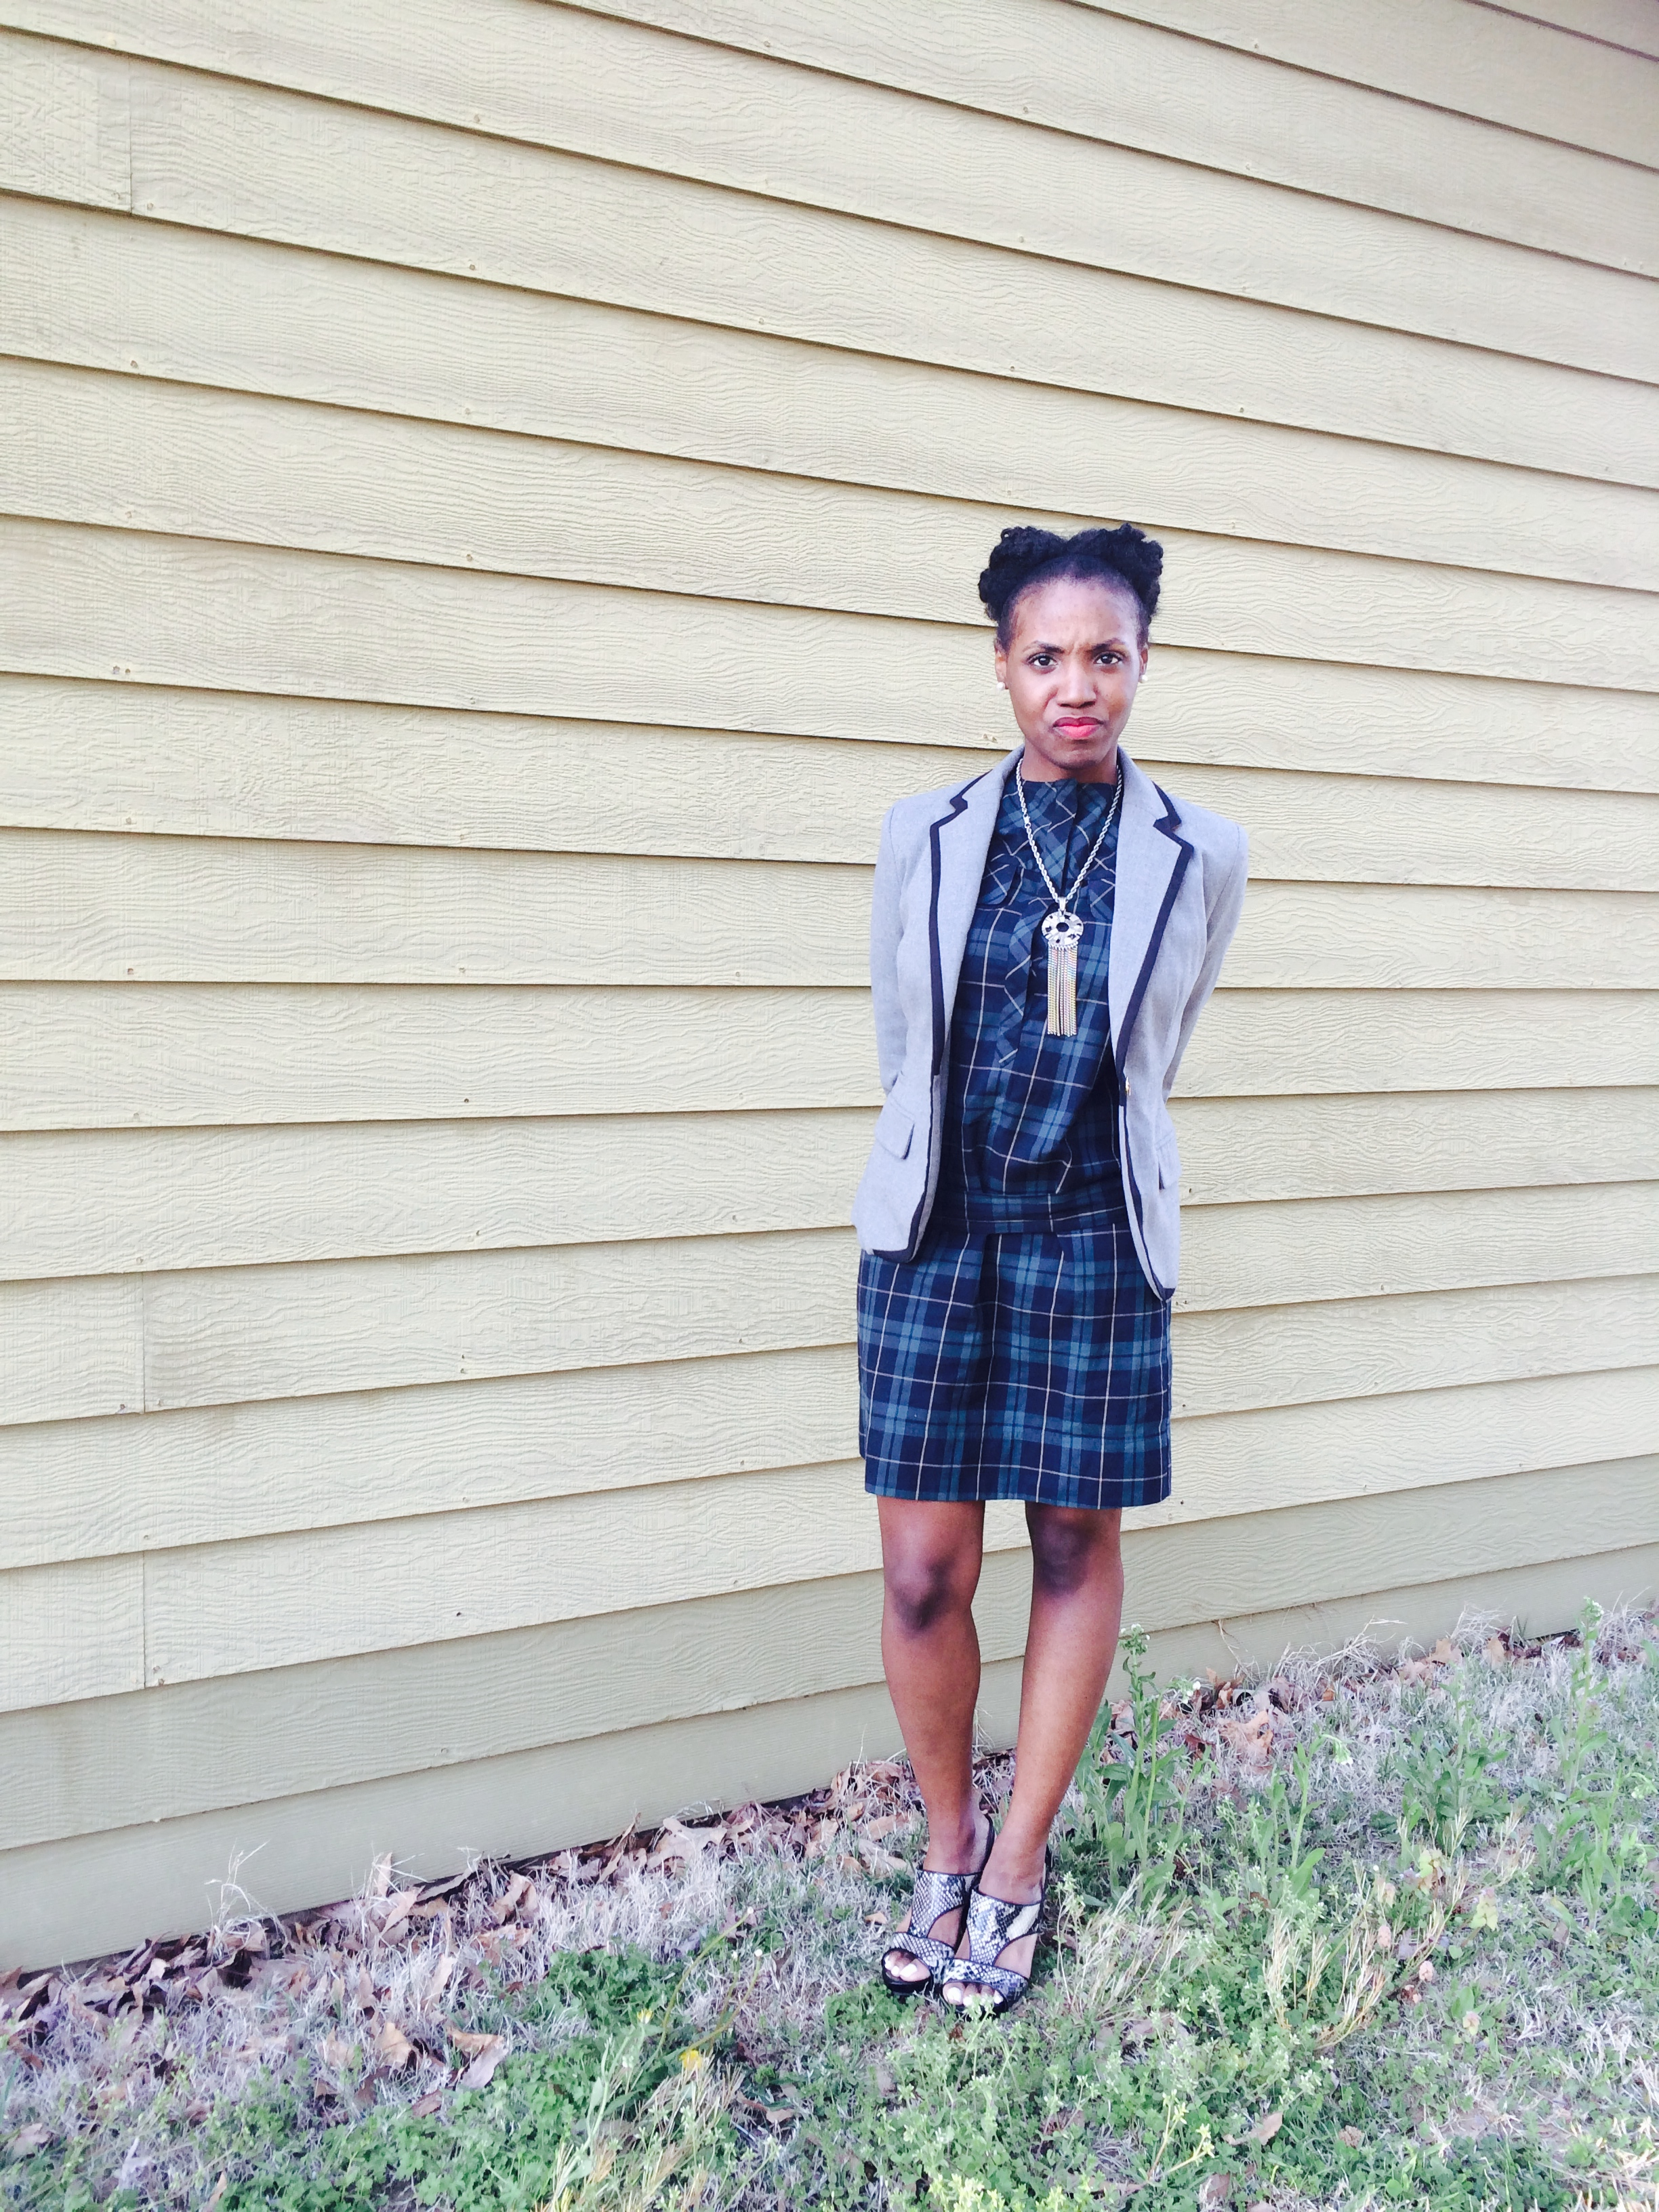 plaid_dress_sosnublog.jpg